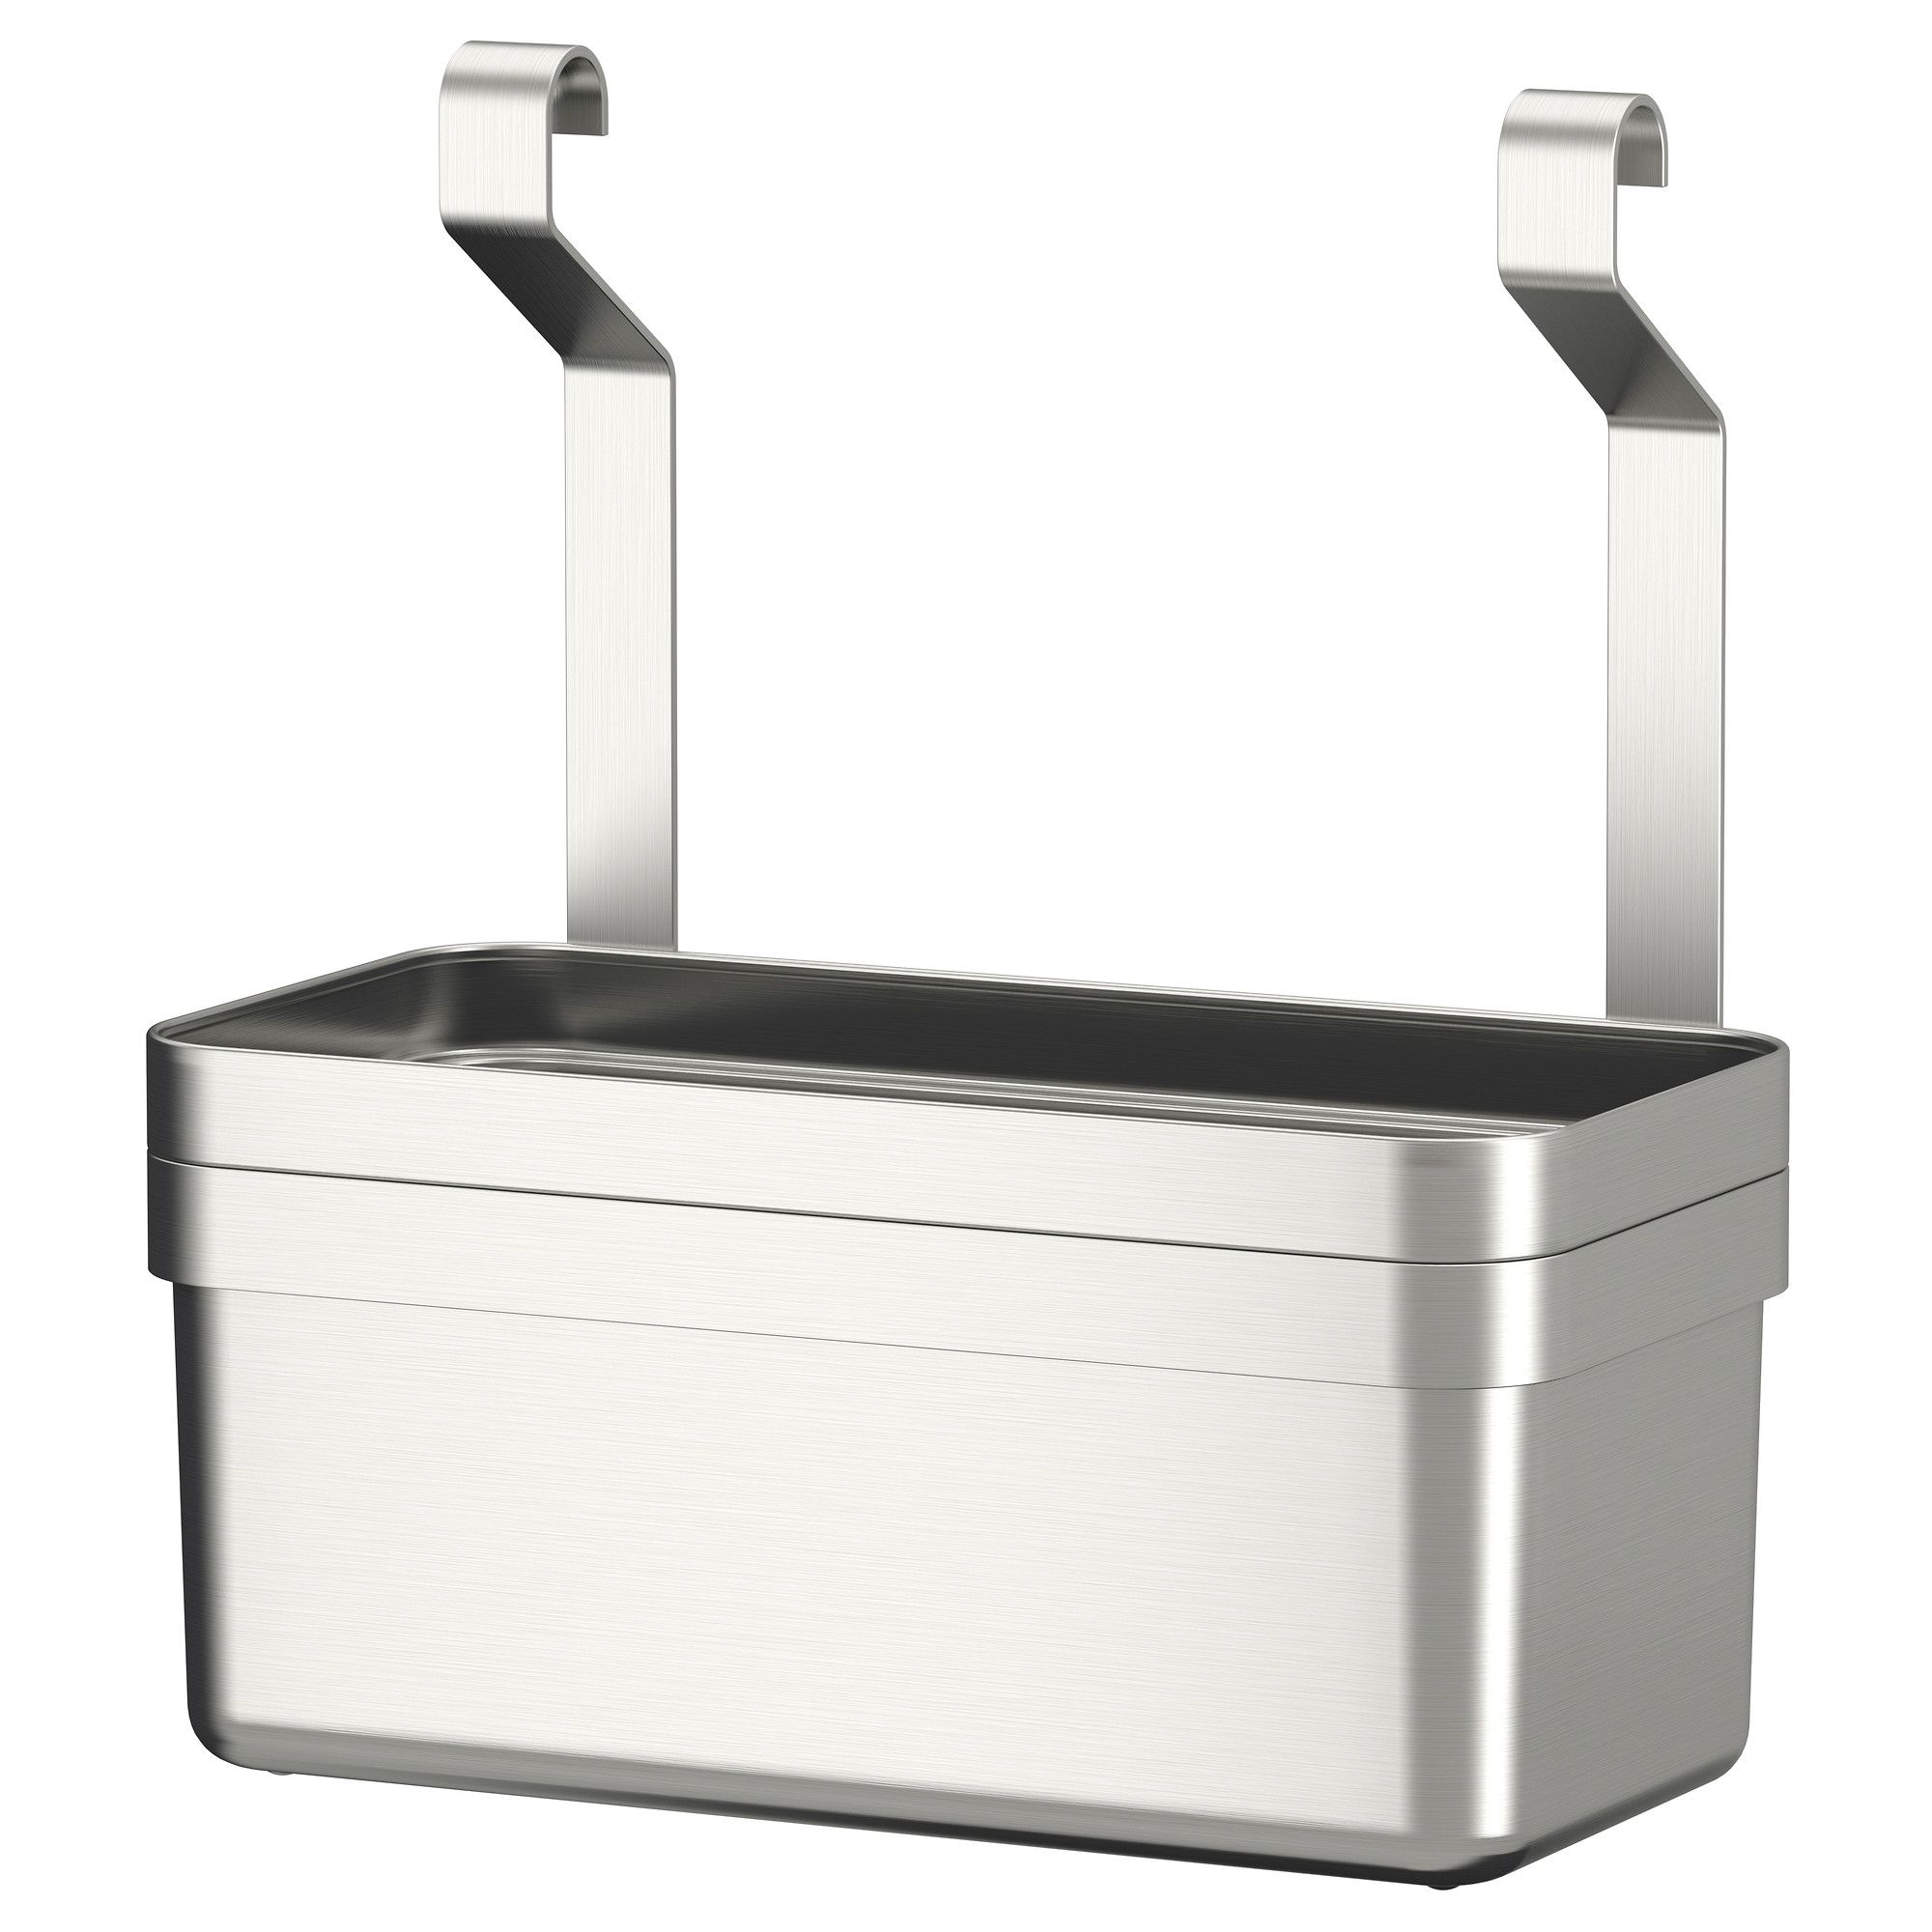 grundtal container - ikea. i got this to store my heat-tools in